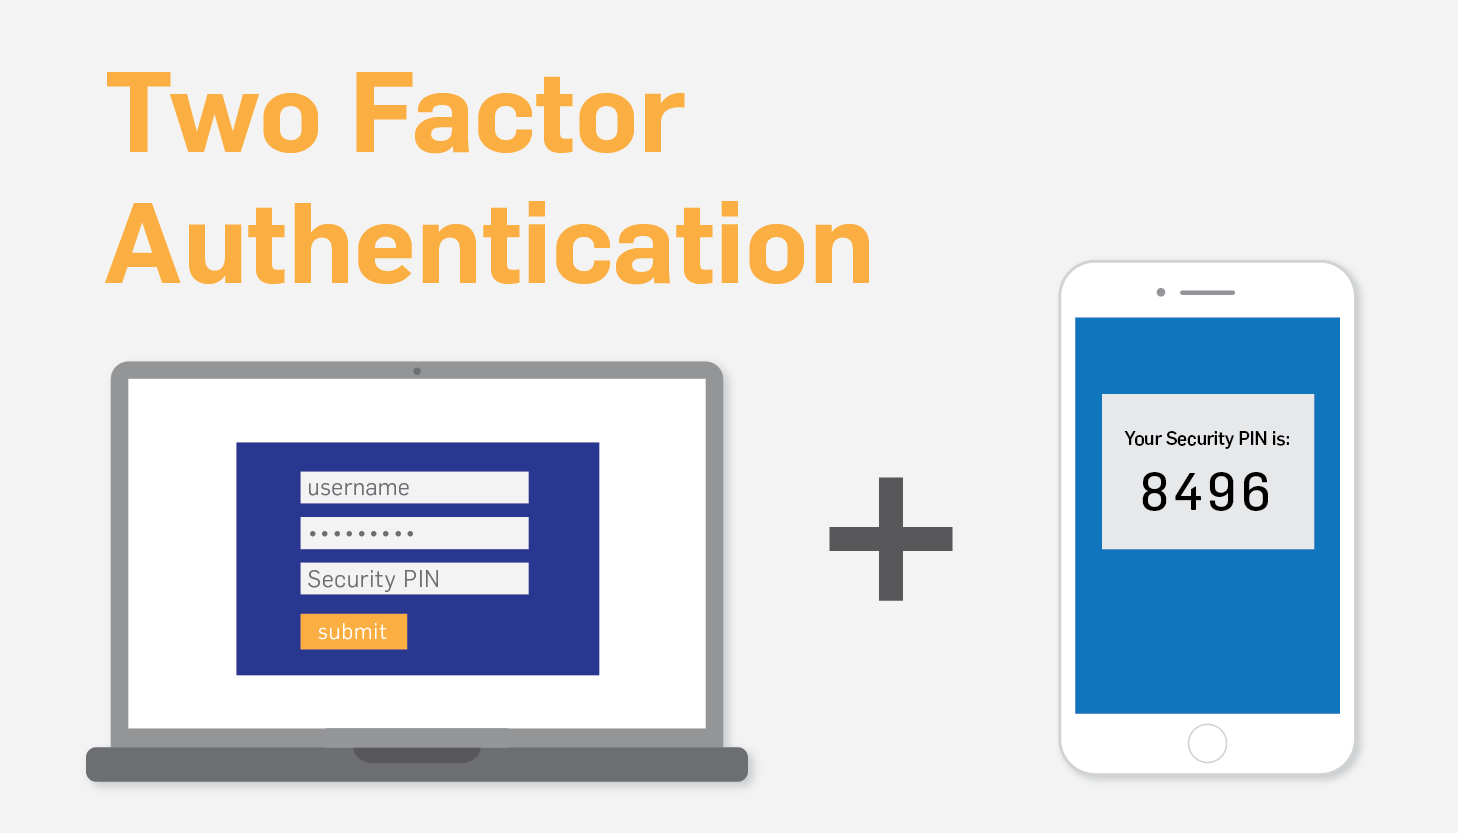 design a multi factor authentication process Image recognition - multi-factor security a simple multi-factor authentication setup involves asking a user for their many banks use image recognition as part of the multi-factor authentication process so their customers can login to their accounts and authorize various financial.